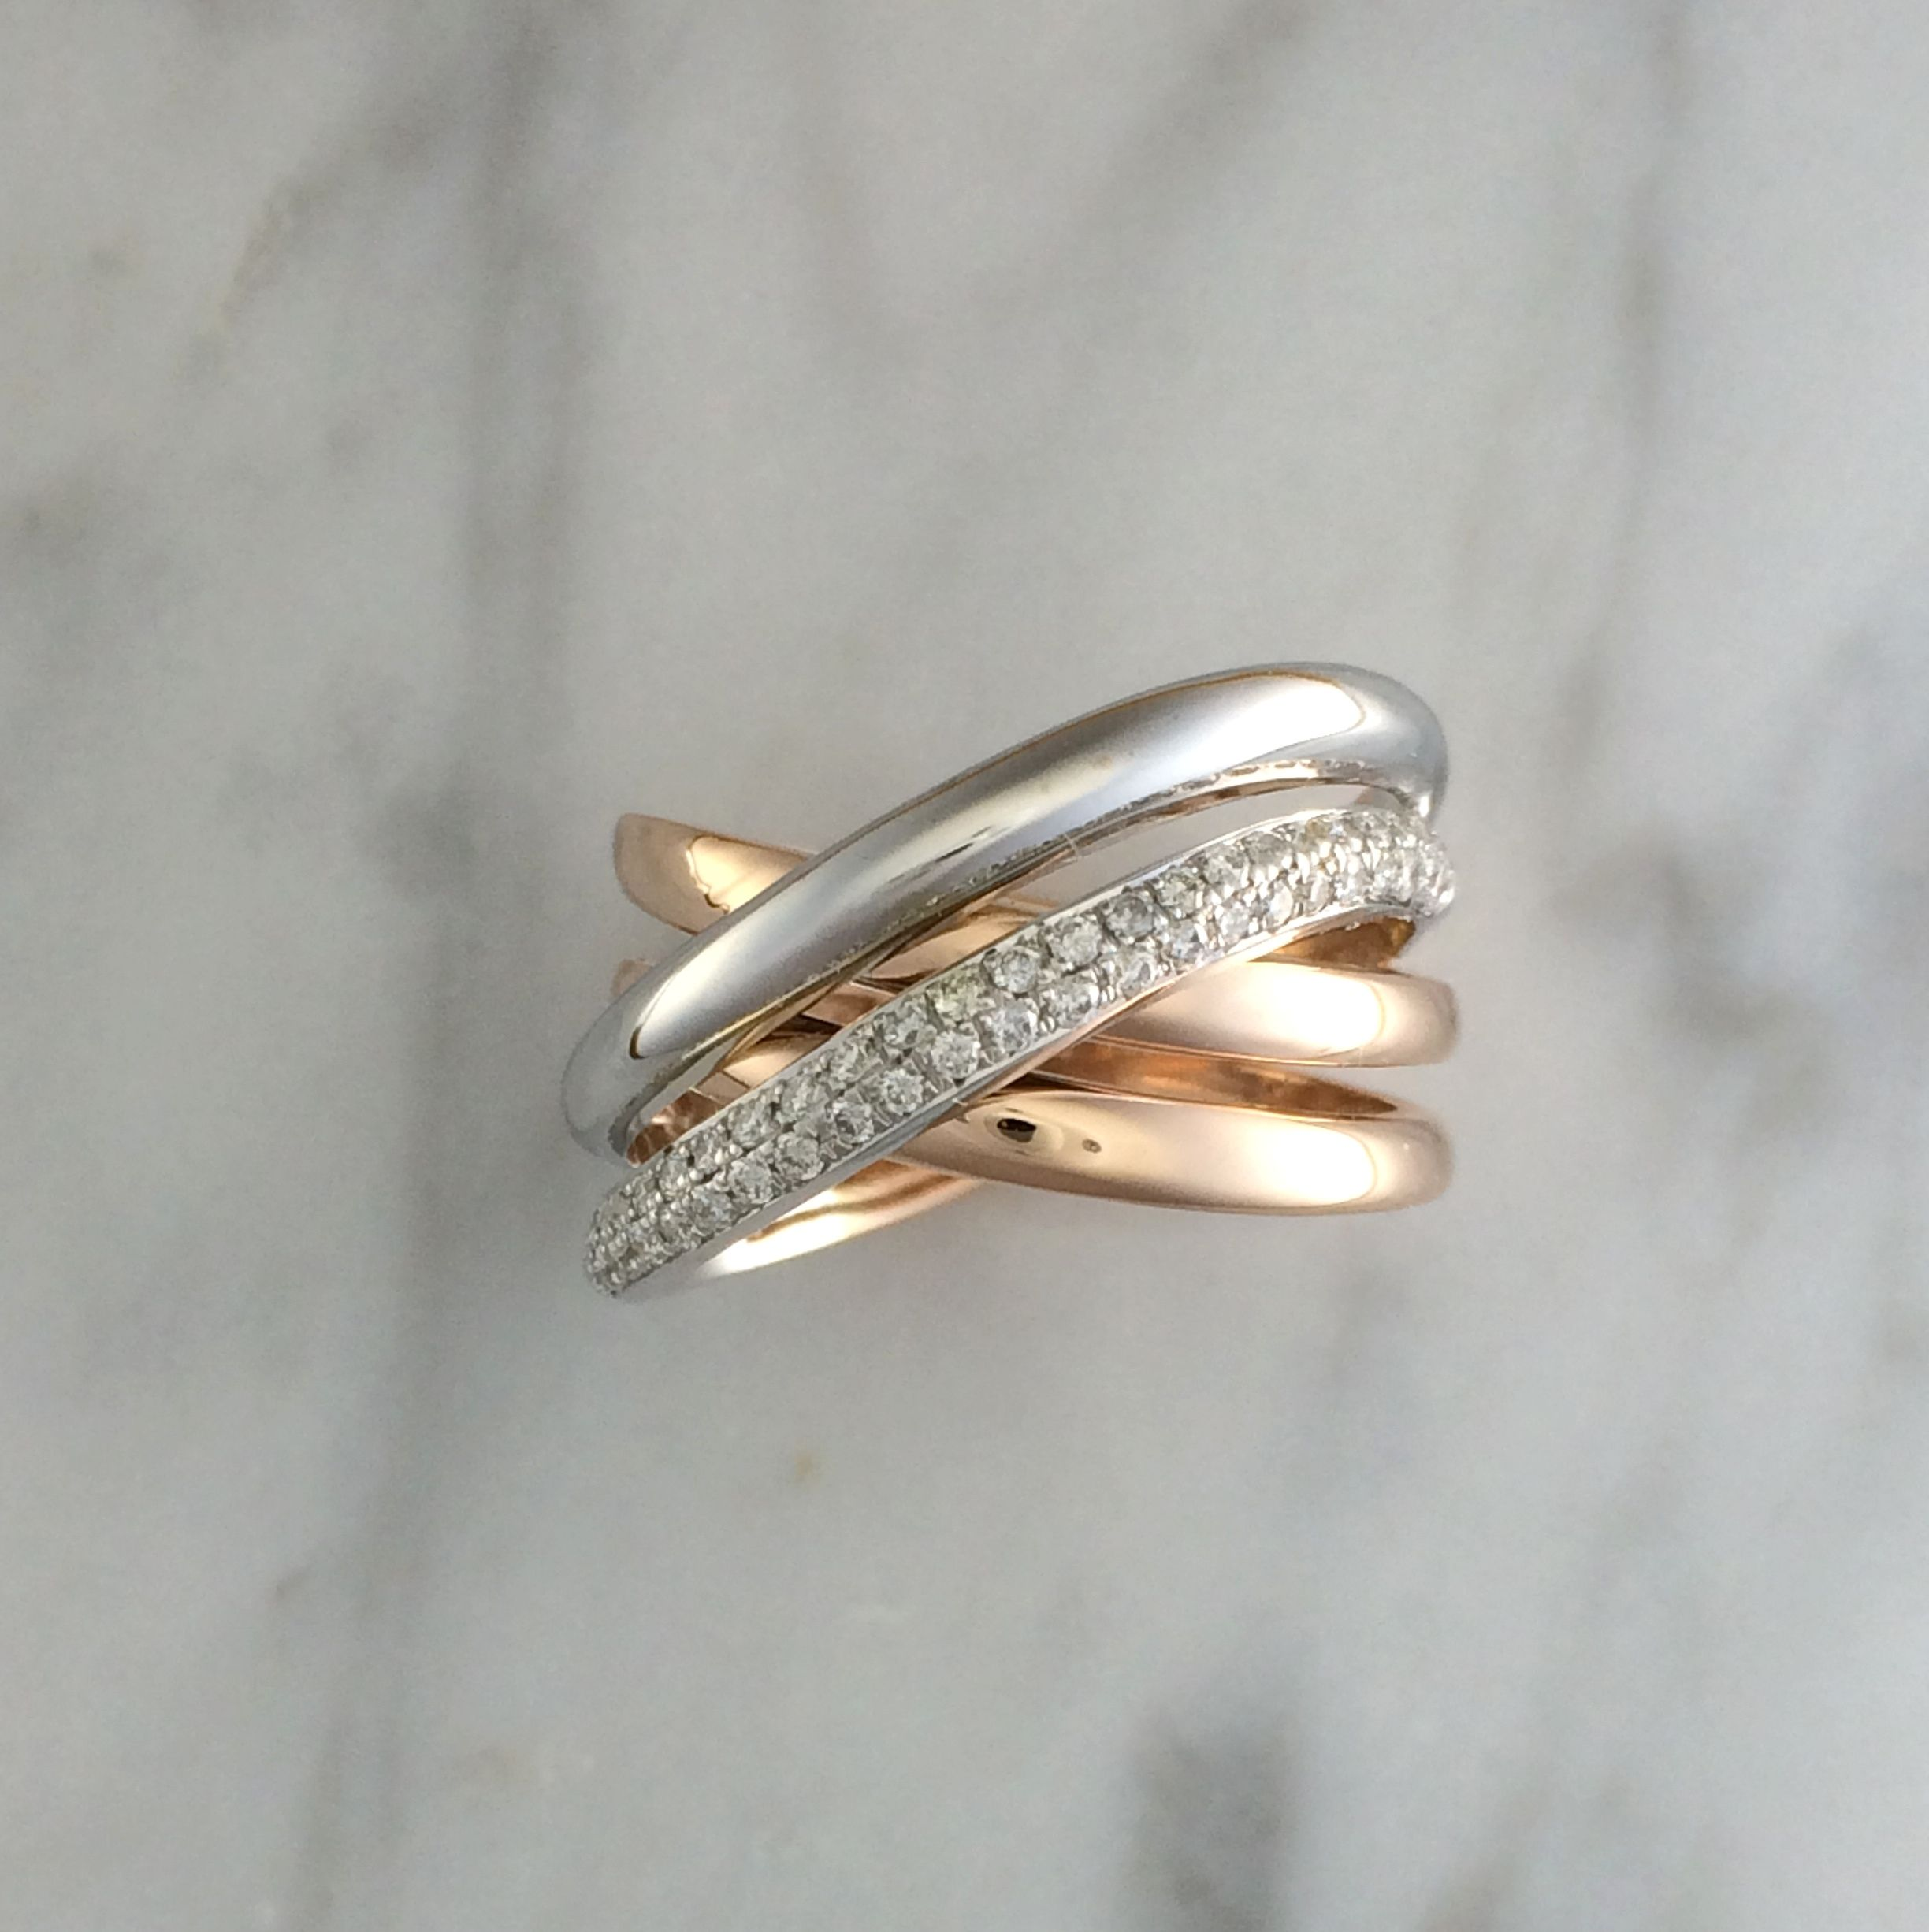 Buy A Custom Made Womens Four Band Diamond Ring 14k